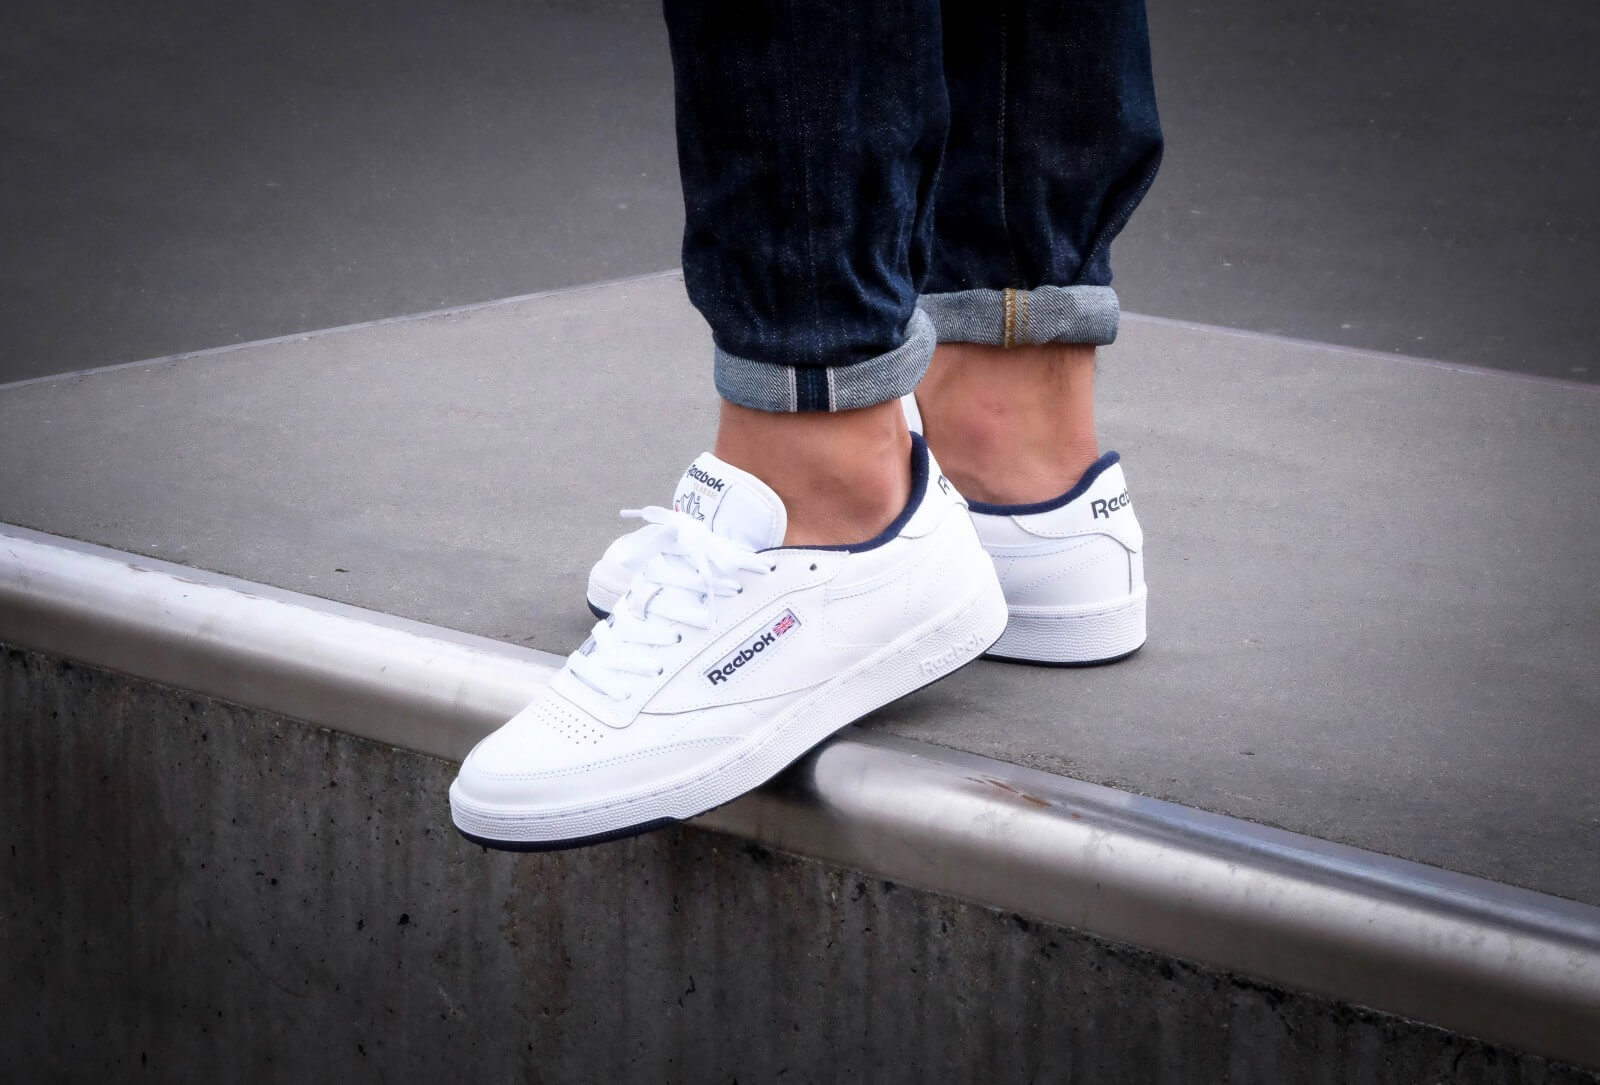 reebok club c white navy cheap   OFF70% The Largest Catalog Discounts 1f9ef0a8f7